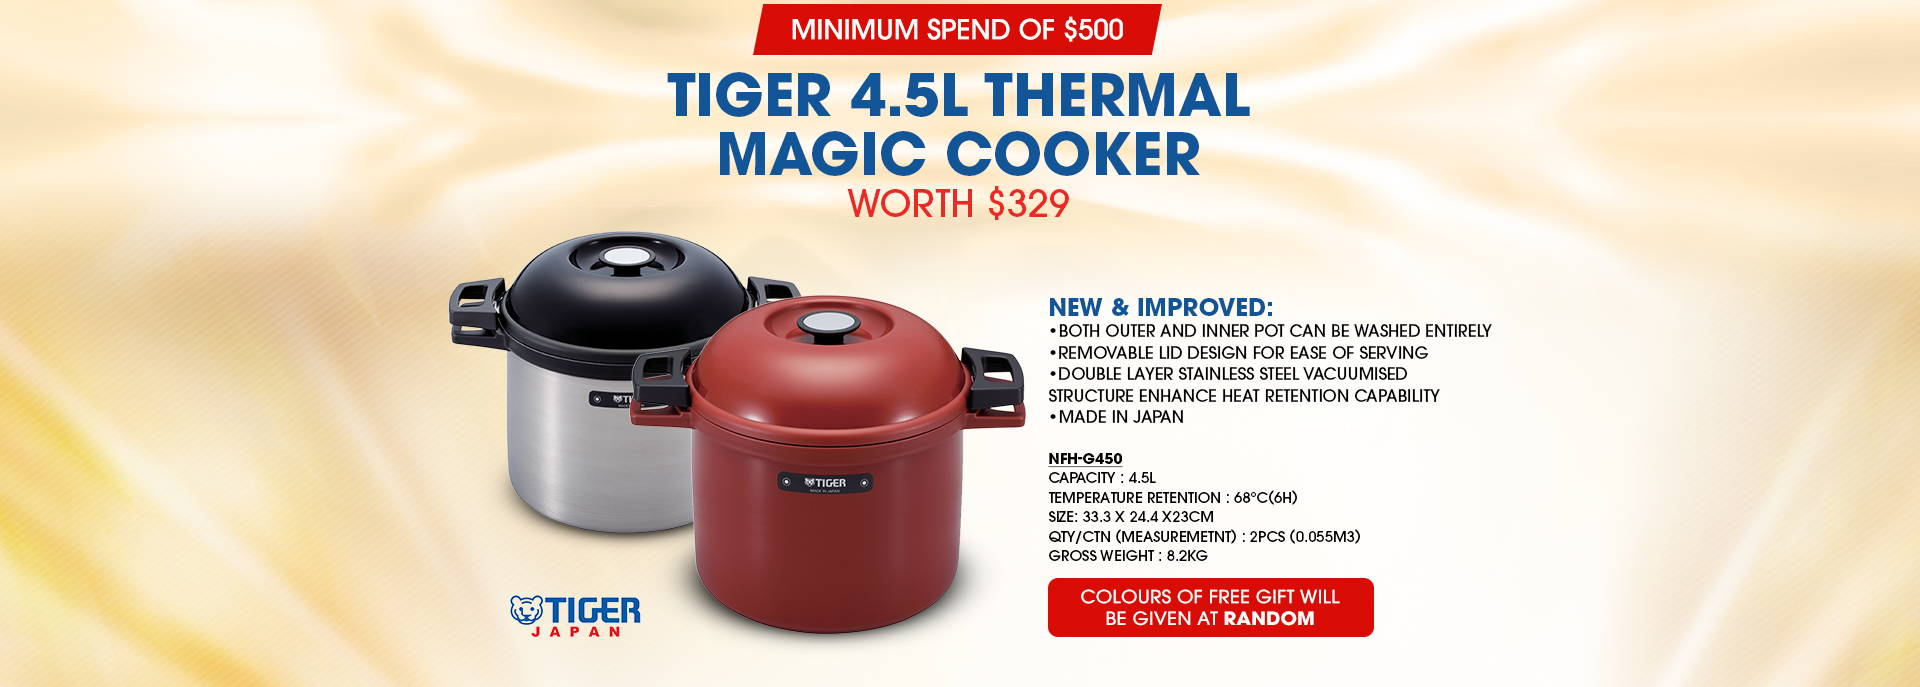 Free Tiger Thermal Magic Cooker